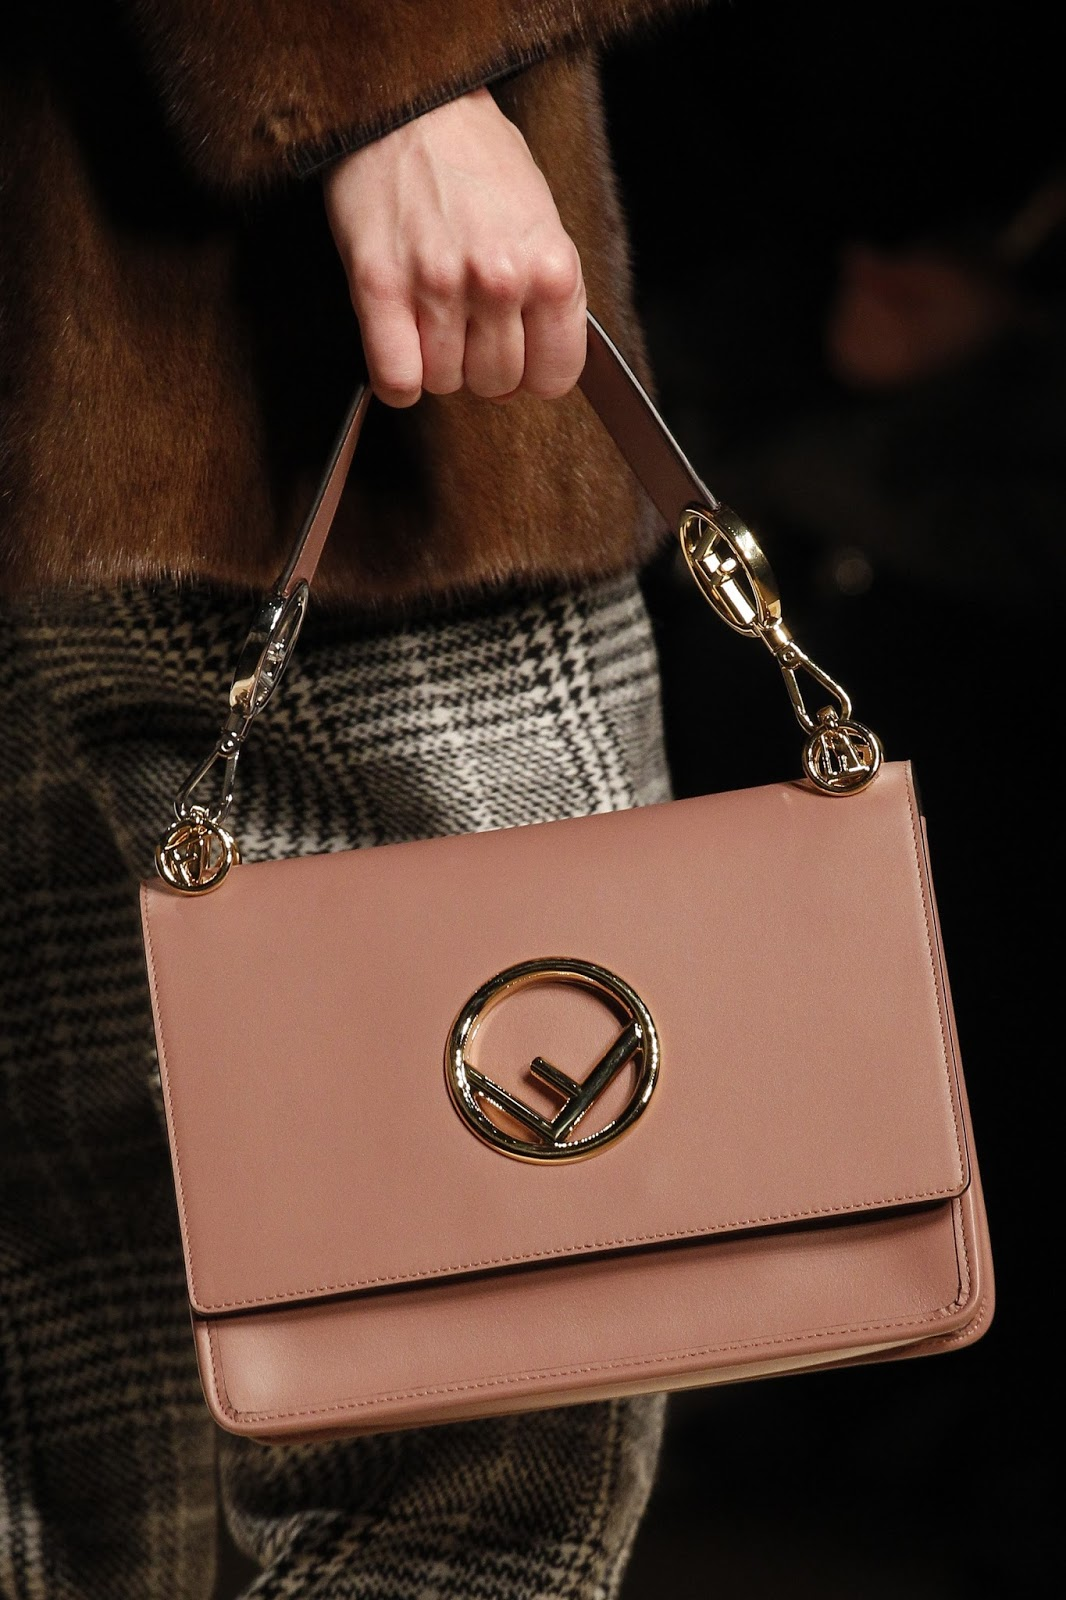 MFW, Autumn/Winter 2017, Fall, bag, accessories